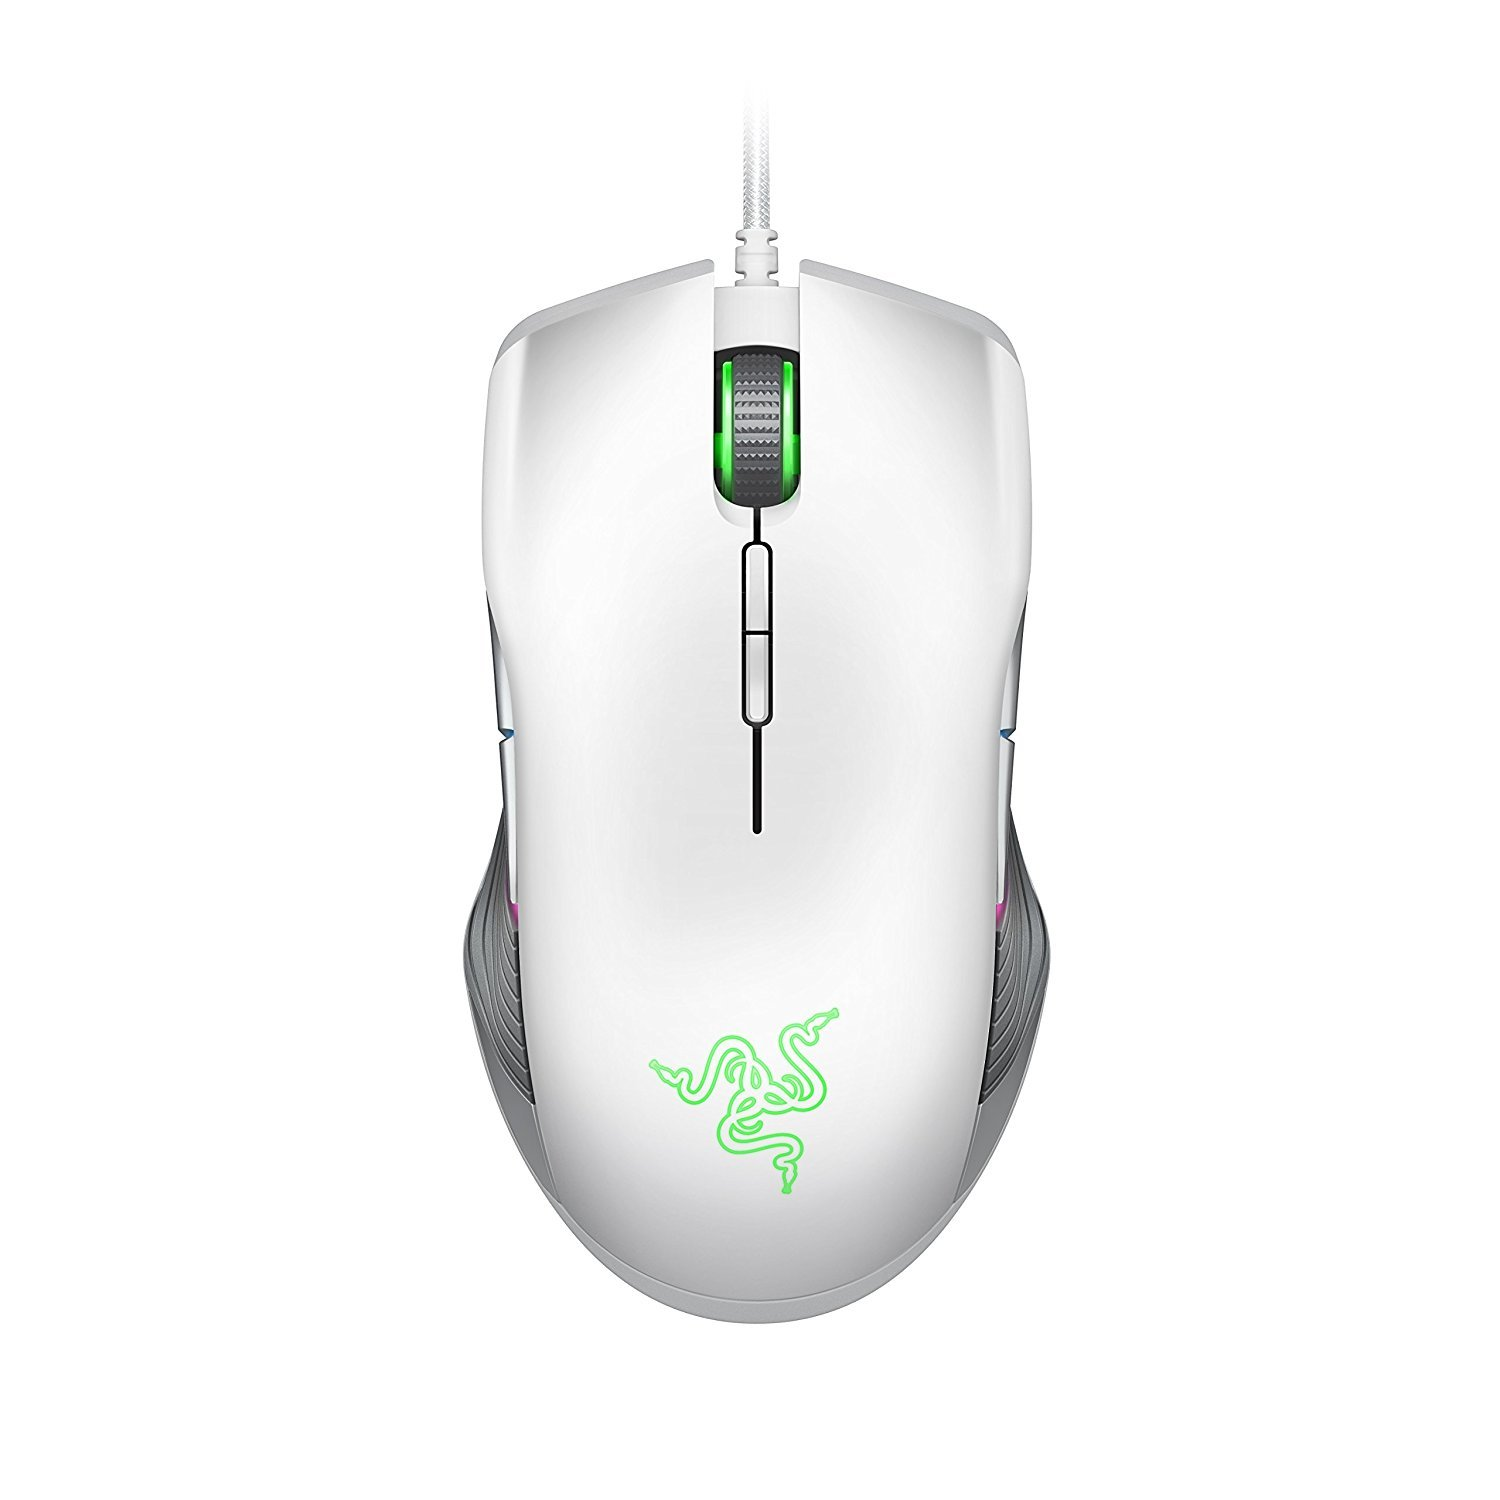 Razer Lancehead TE Ambidextrous Gaming Mouse - [Mercury][16,000 DPI Optical Sensor][Chroma RGB Lighting][8 Programmable Buttons][Mechanical Switches] by Razer (Image #7)